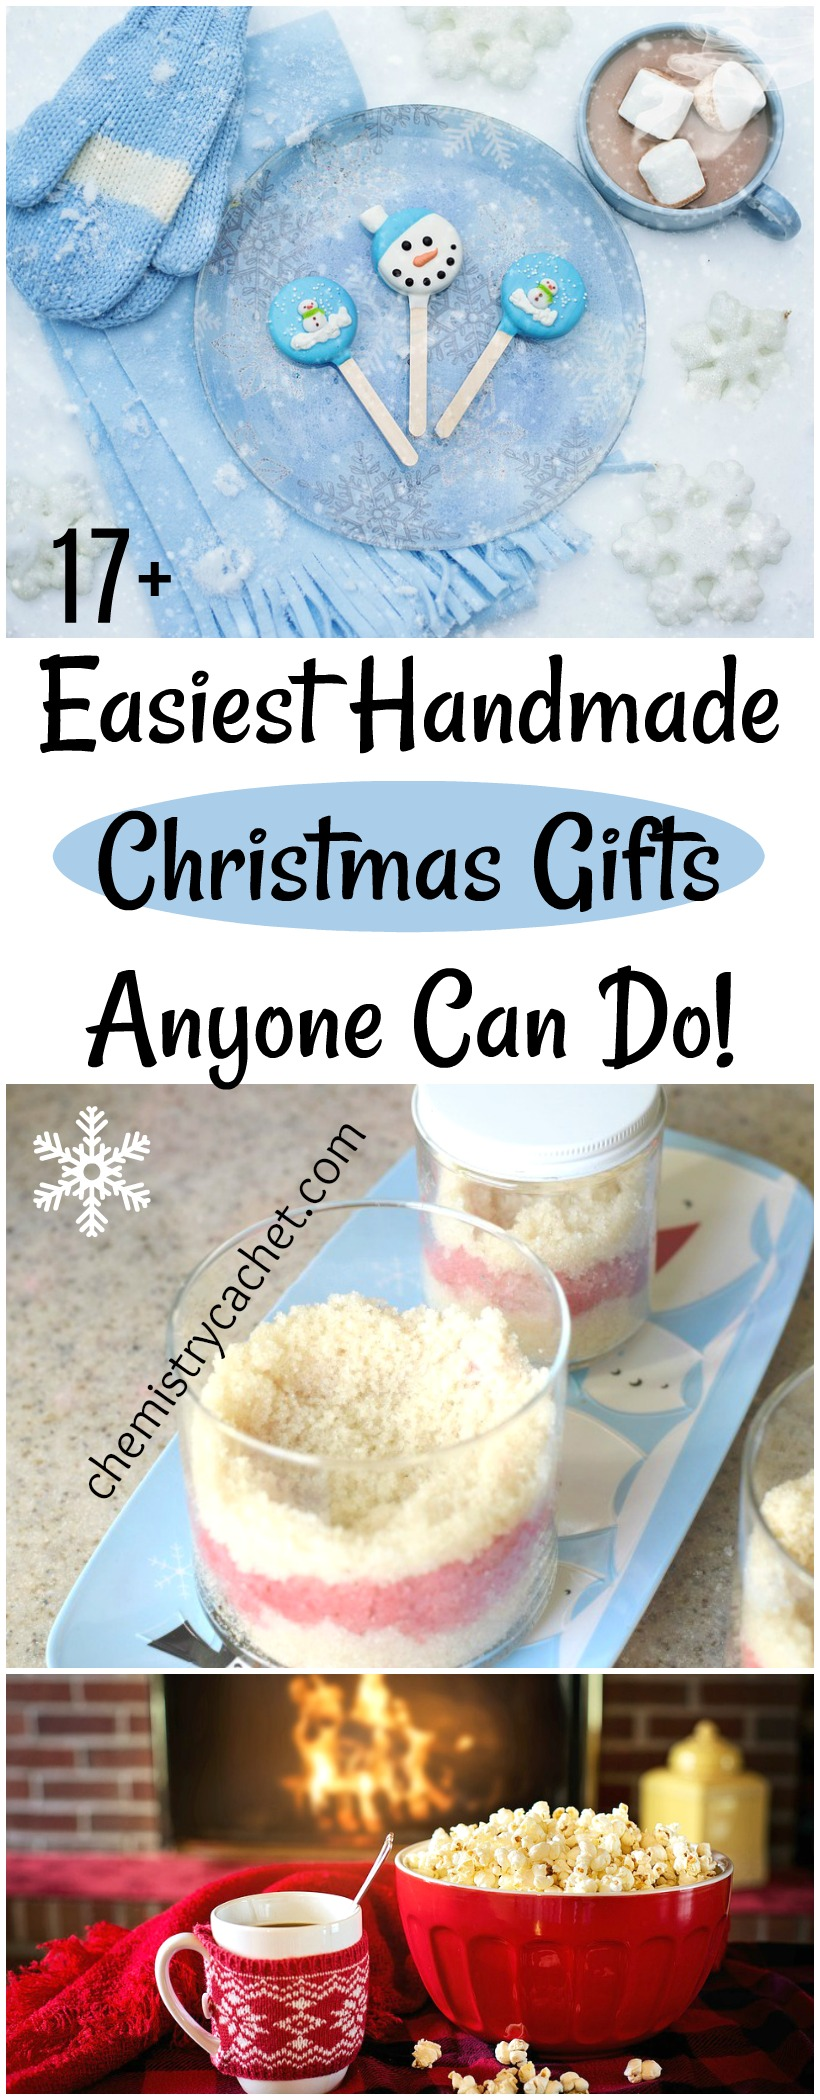 17+ Easiest Handmade Christmas Gifts Anyone Can Do! on chemistrycachet.com #handmadechristmas #easychristmasDIY